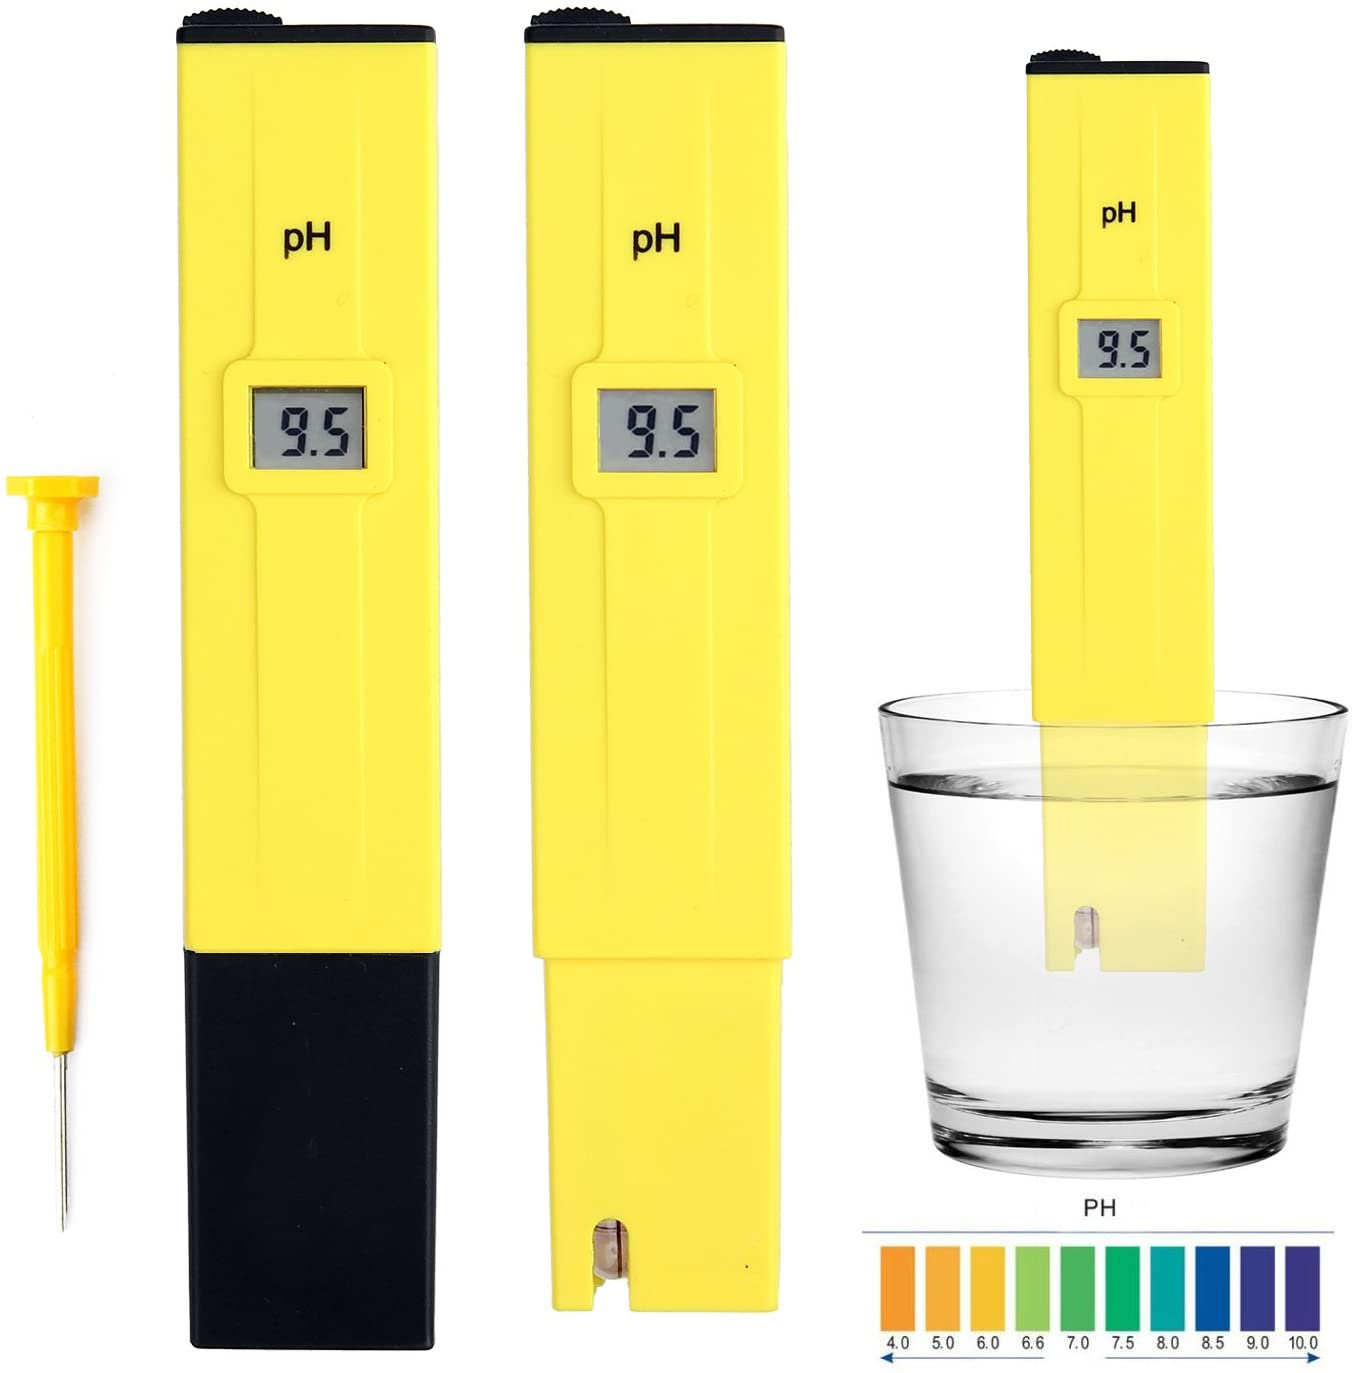 Digital PH Meter High Accuracy Water Quality Calibration Buffer Powder with 0-14 PH Measurement Range for Household Drinking Hydroponics Pool and Aquarium Water PH Tester Design with ATC (Blue)